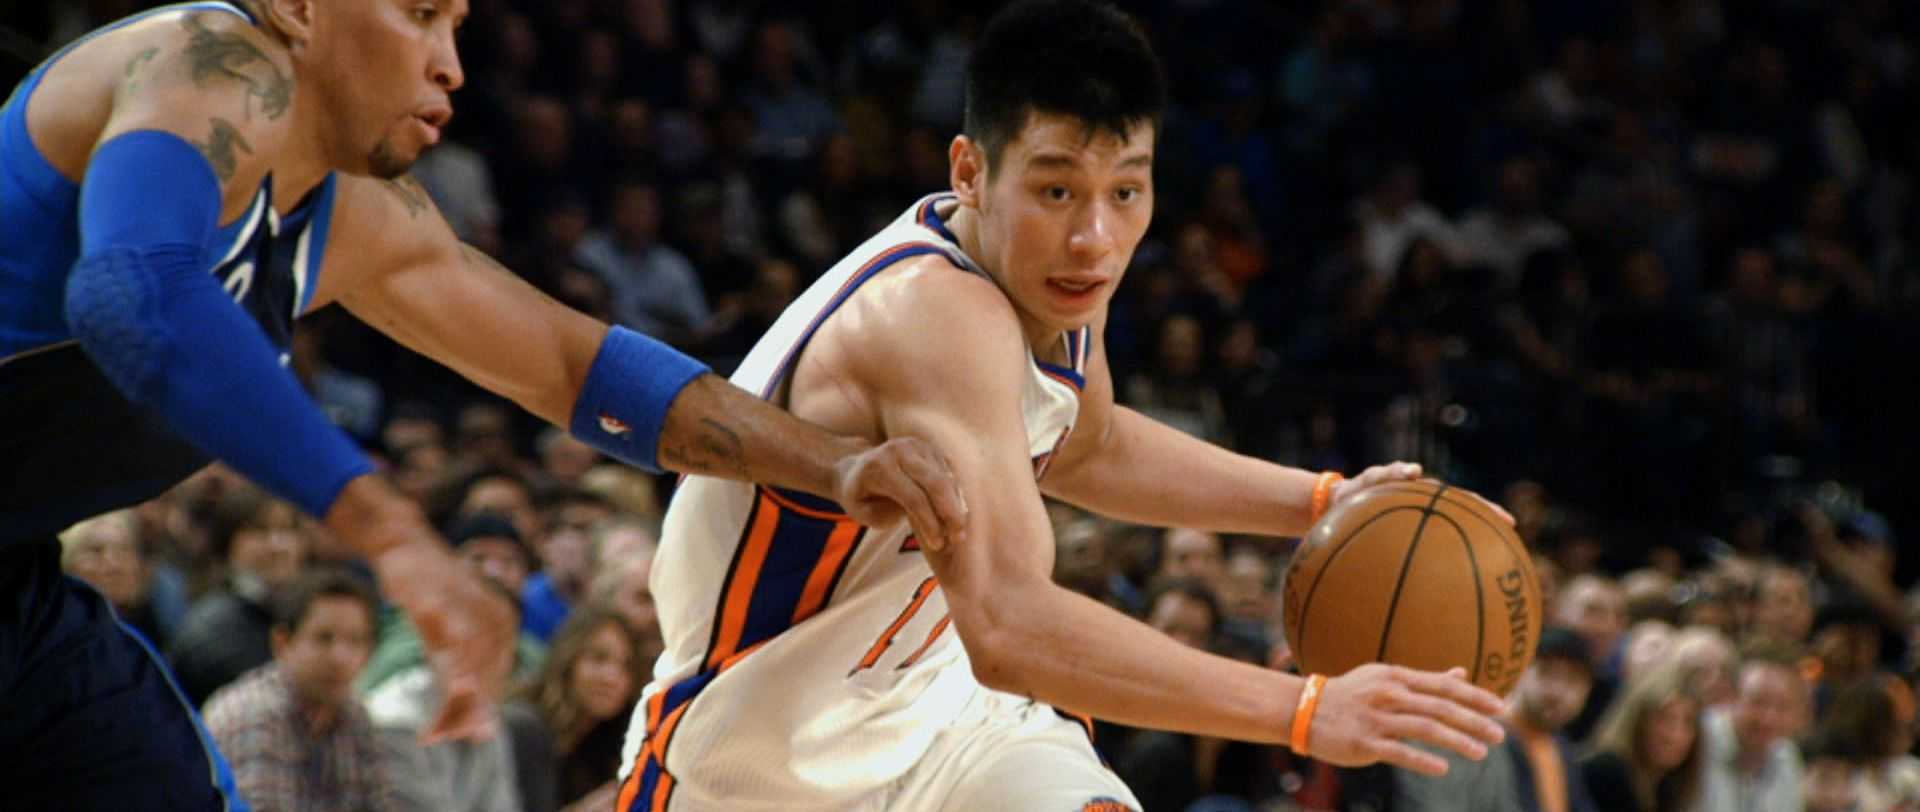 An image from Linsanity